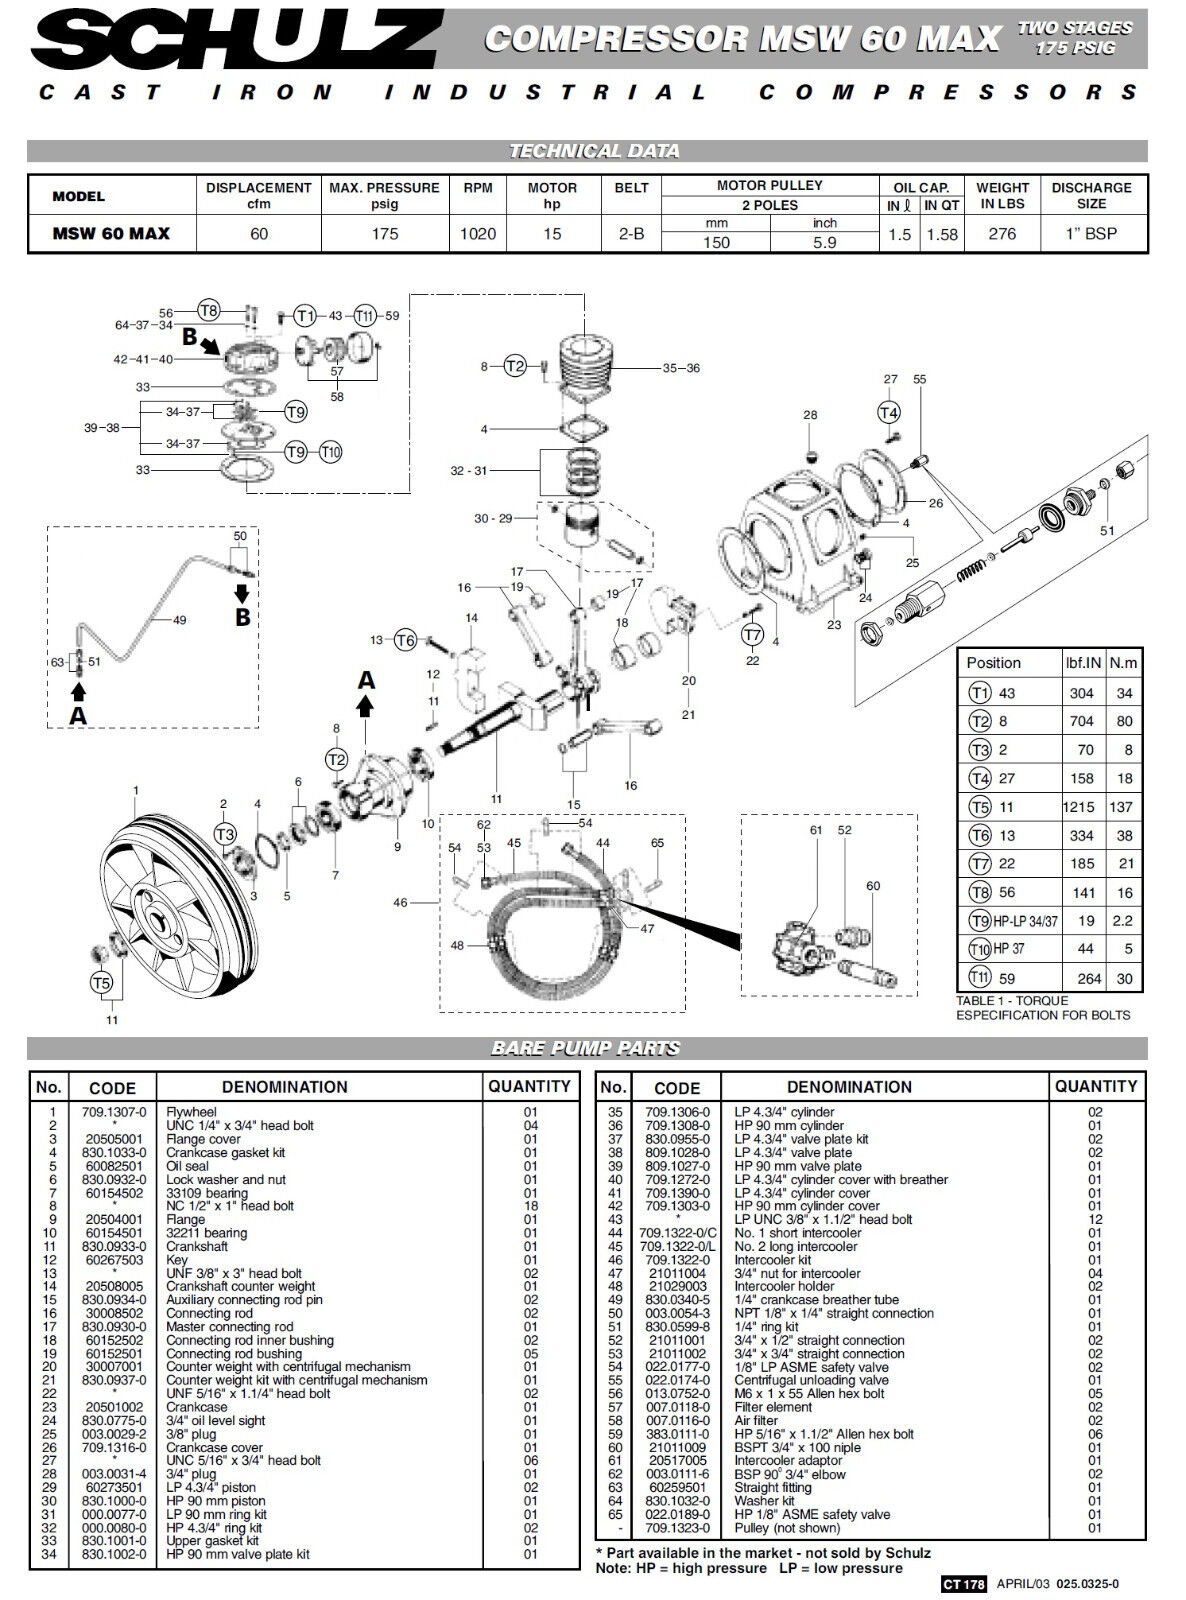 schulz air compressor wiring diagram   36 wiring diagram